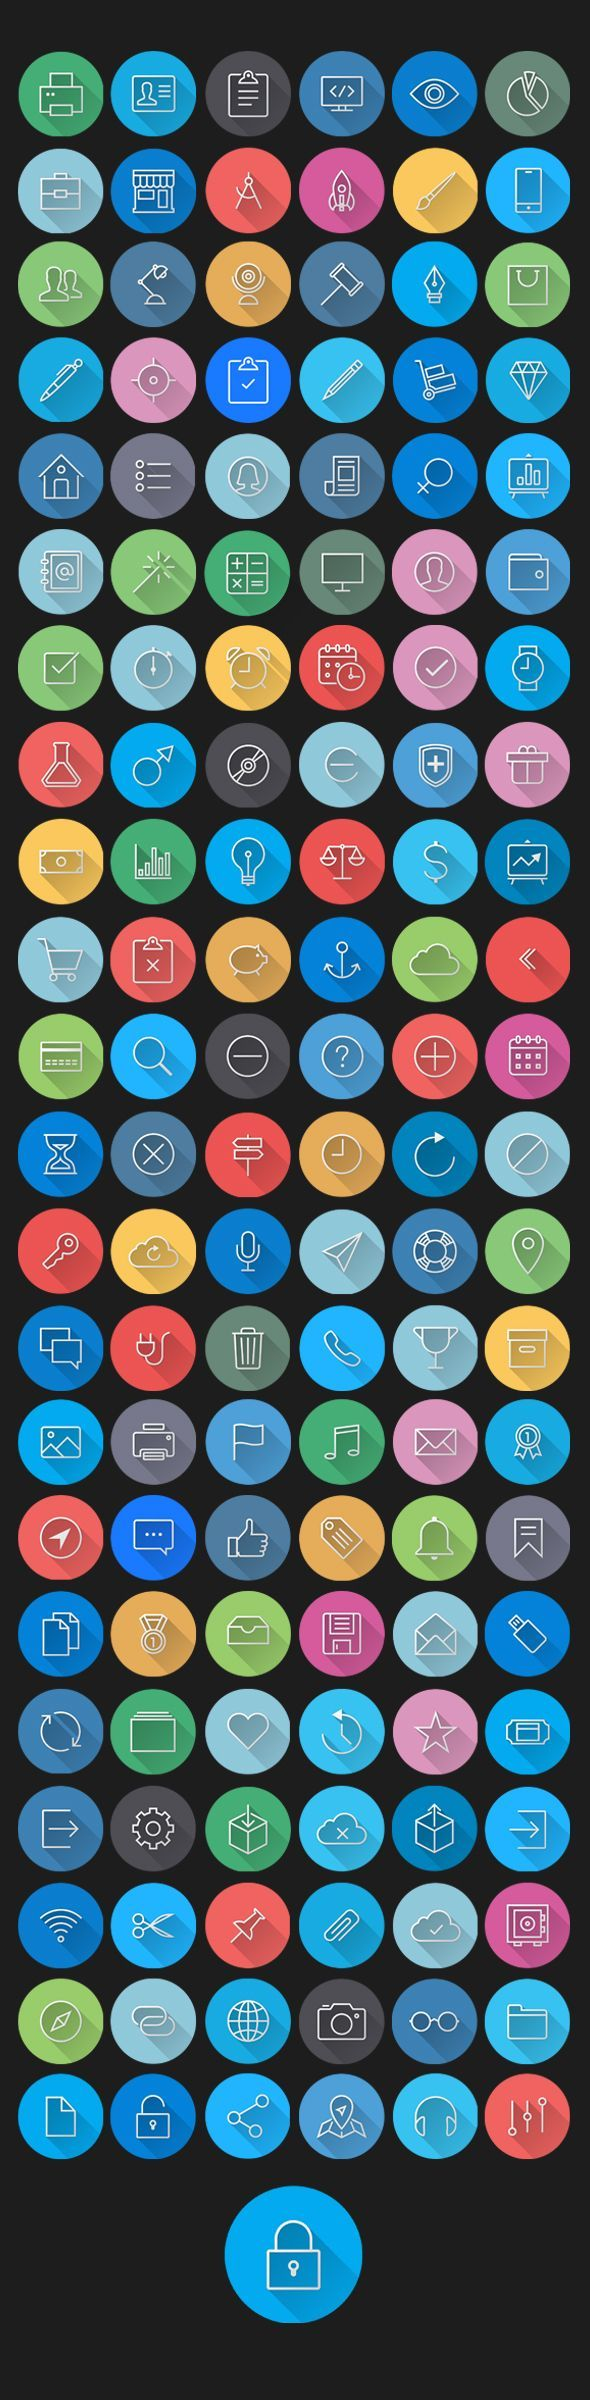 iOS7 Icons - Colorful Flat Icons Pack | DailyDesignMag by Cursor Creative House, via Behance